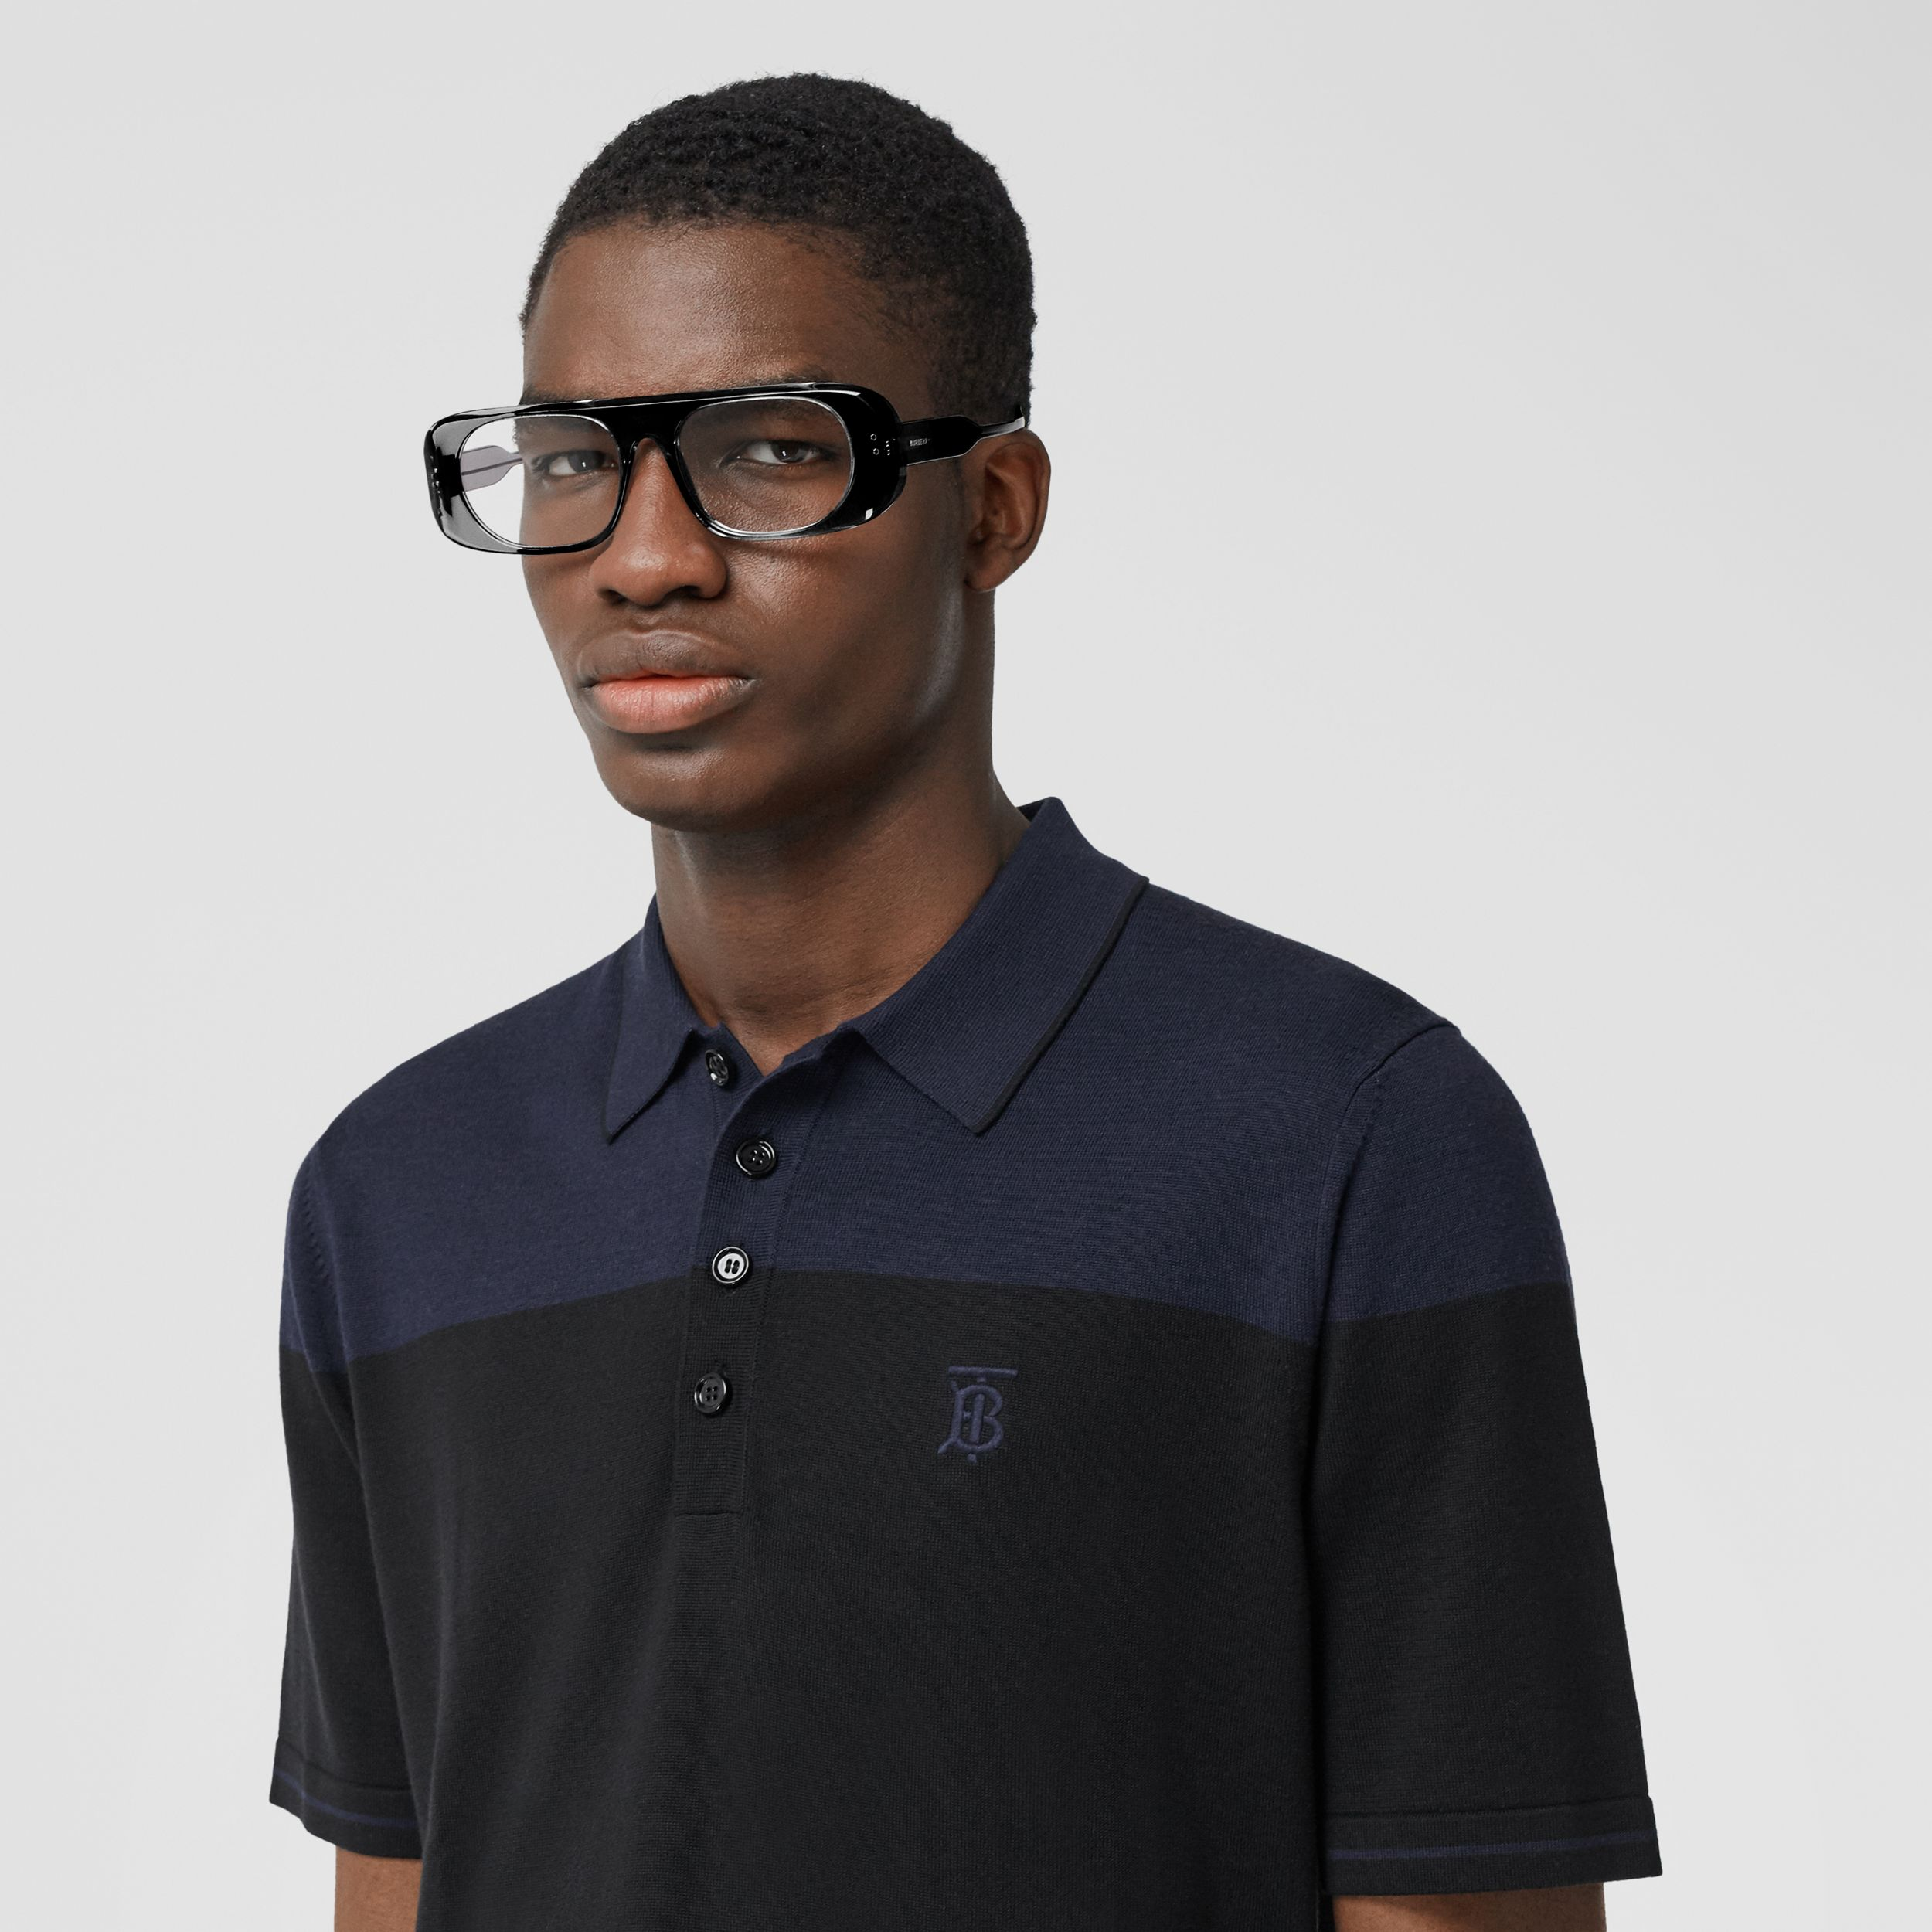 Monogram Motif Two-tone Silk Cashmere Polo Shirt in Black/navy - Men | Burberry - 2